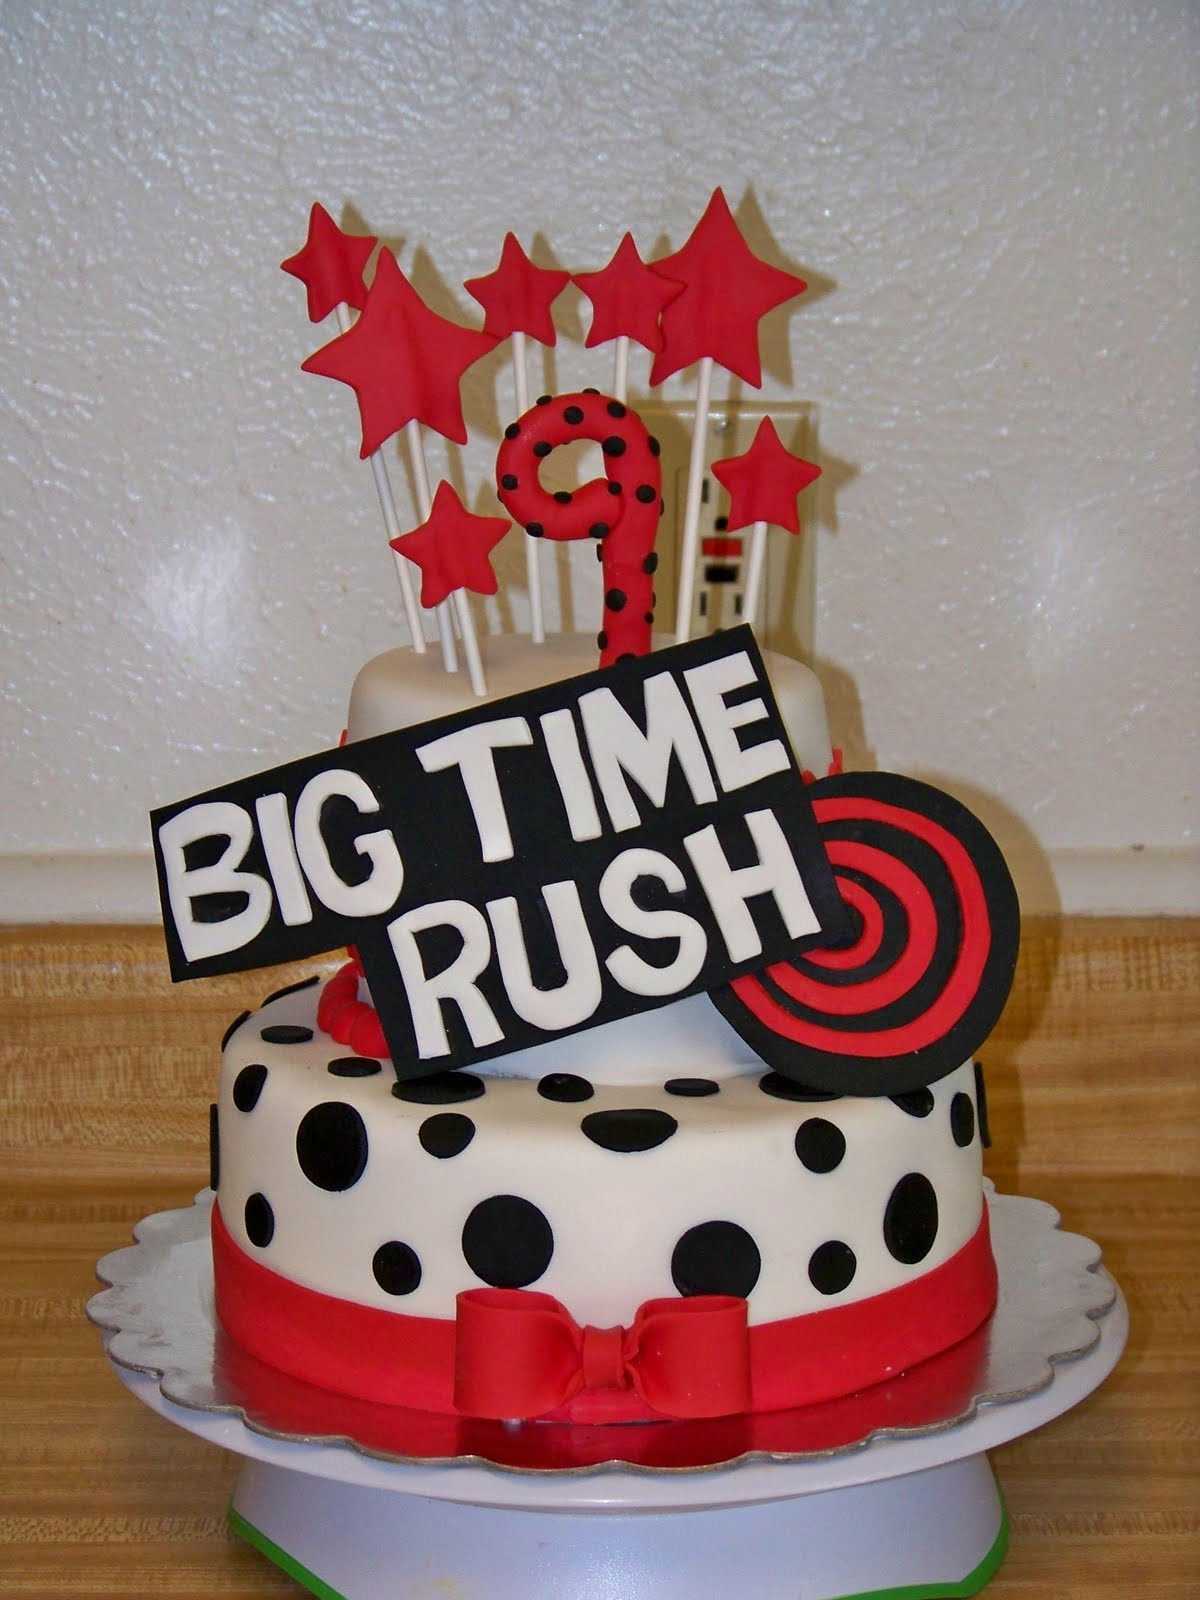 Big%2BTime%2BRush%2BCake%2B%252810%2529.JPG